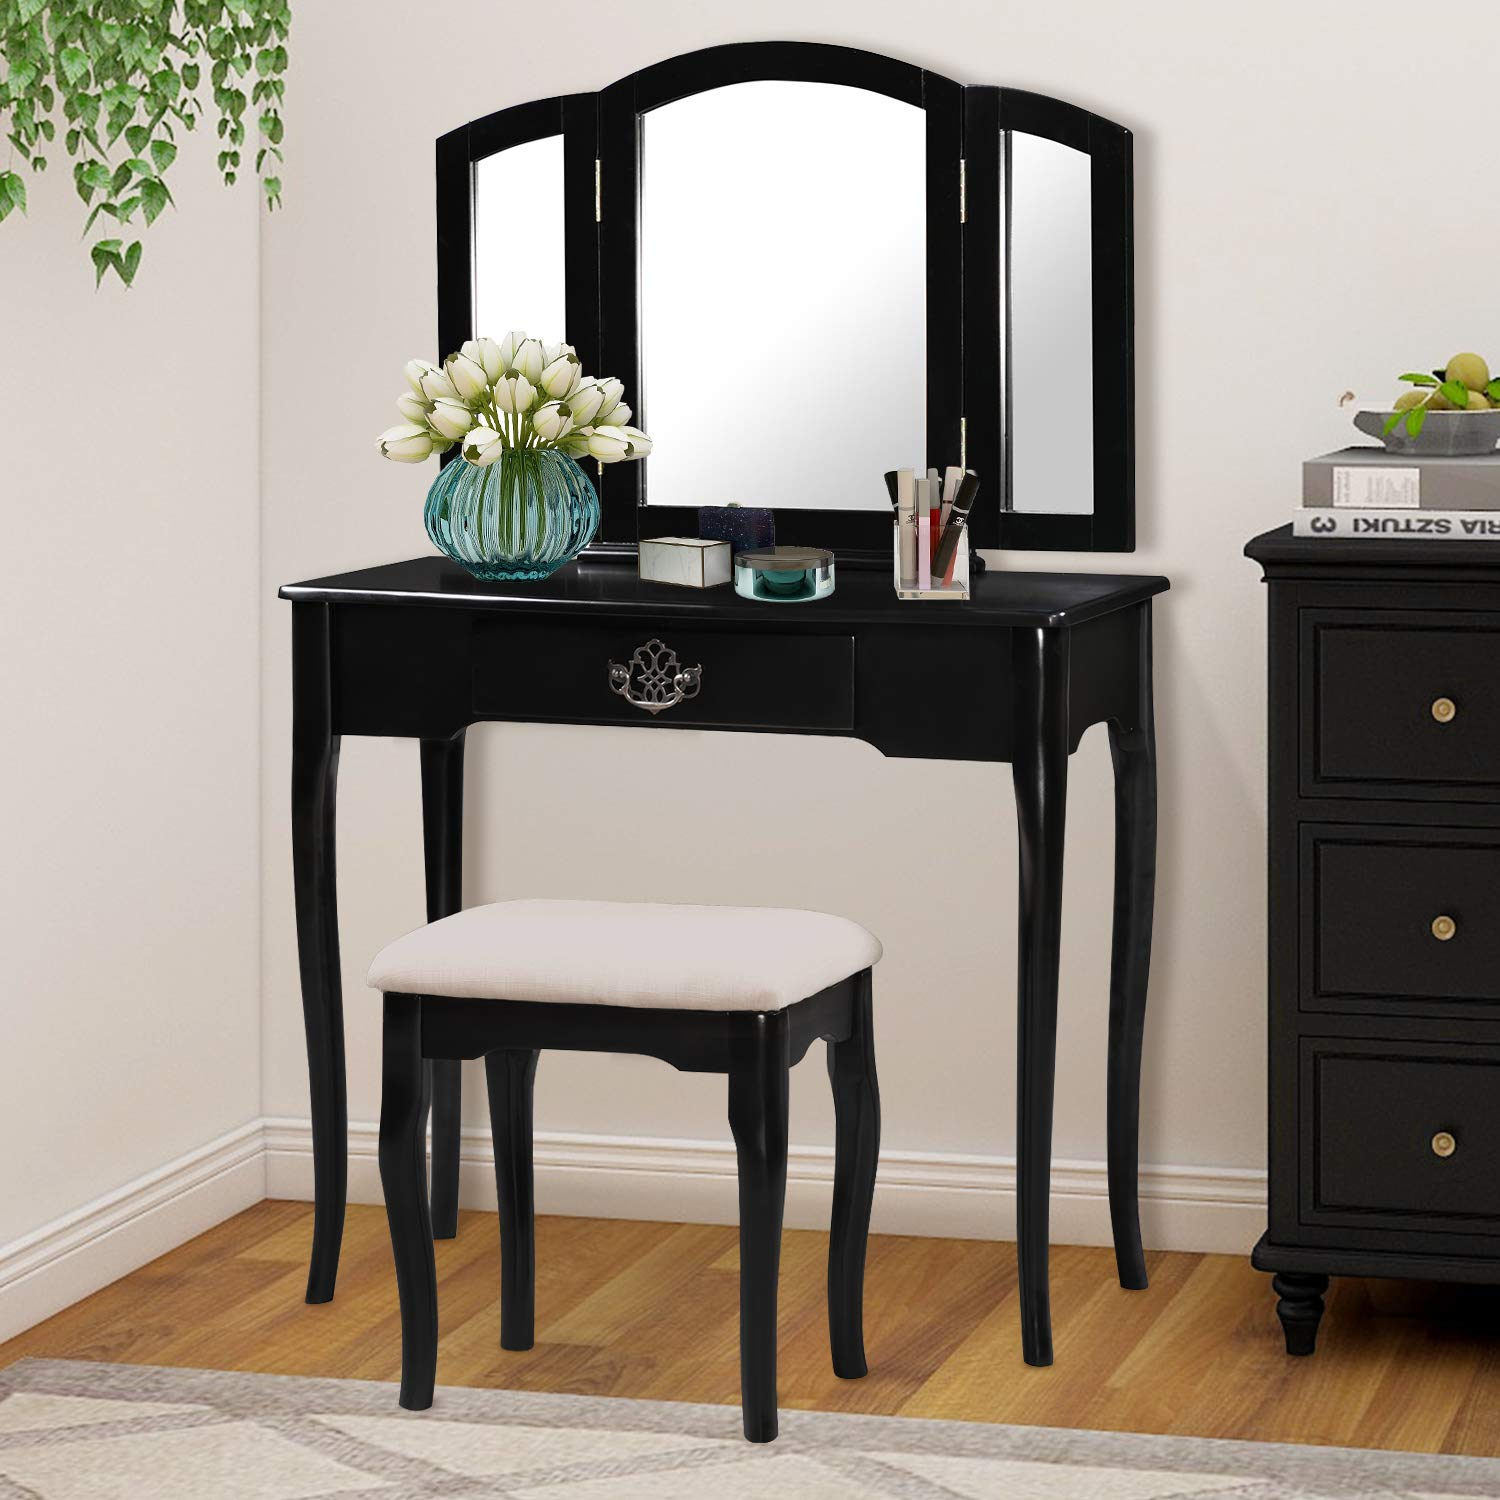 Harper Bright Designs Vanity Set Make-up Dressing Table with Mirror and Cushioned Stool Black